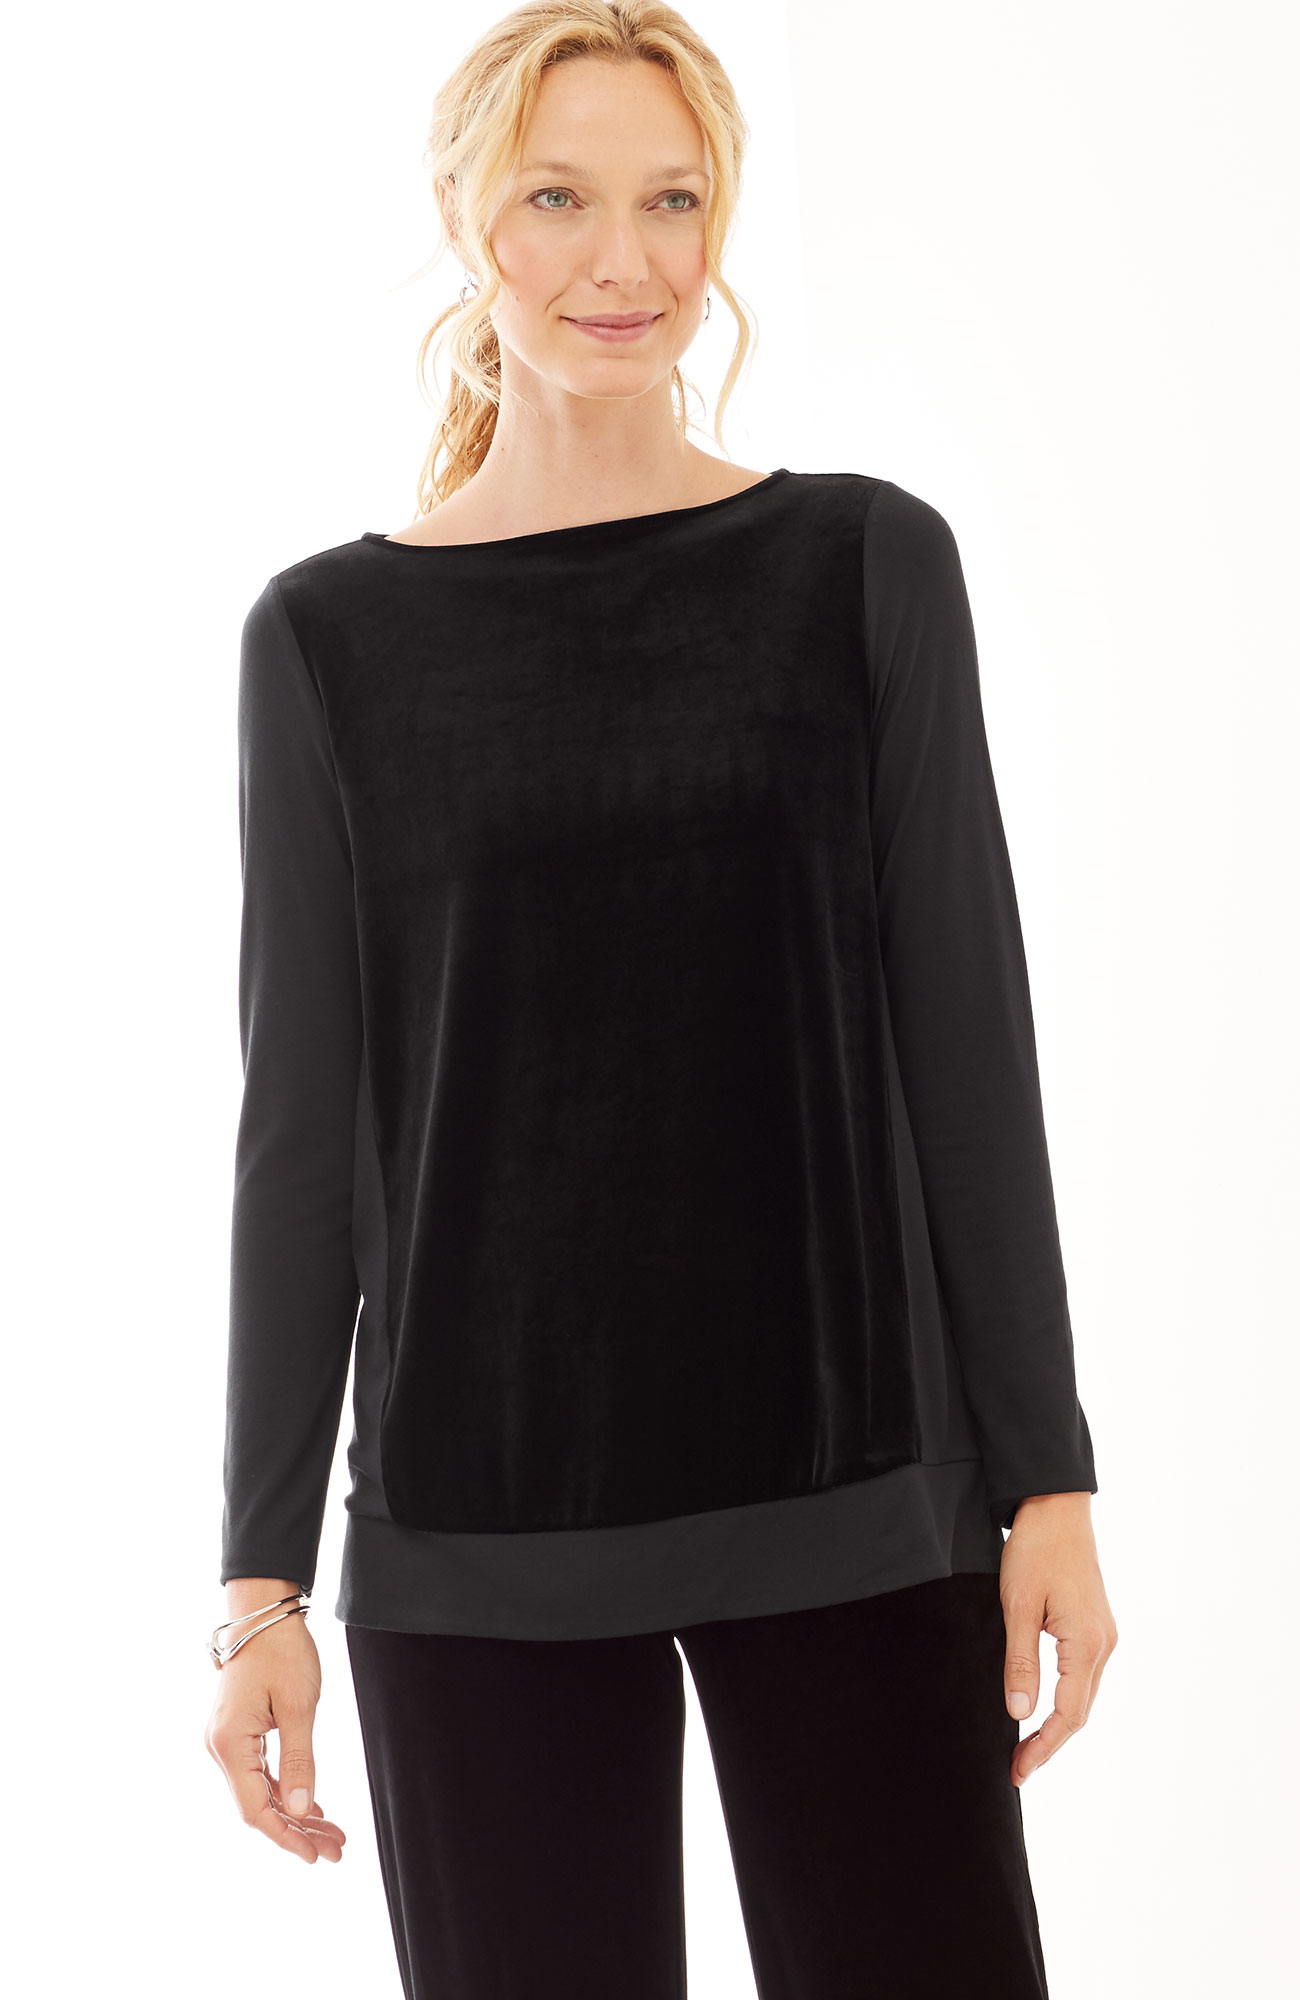 Wearever knit & velvet swing top